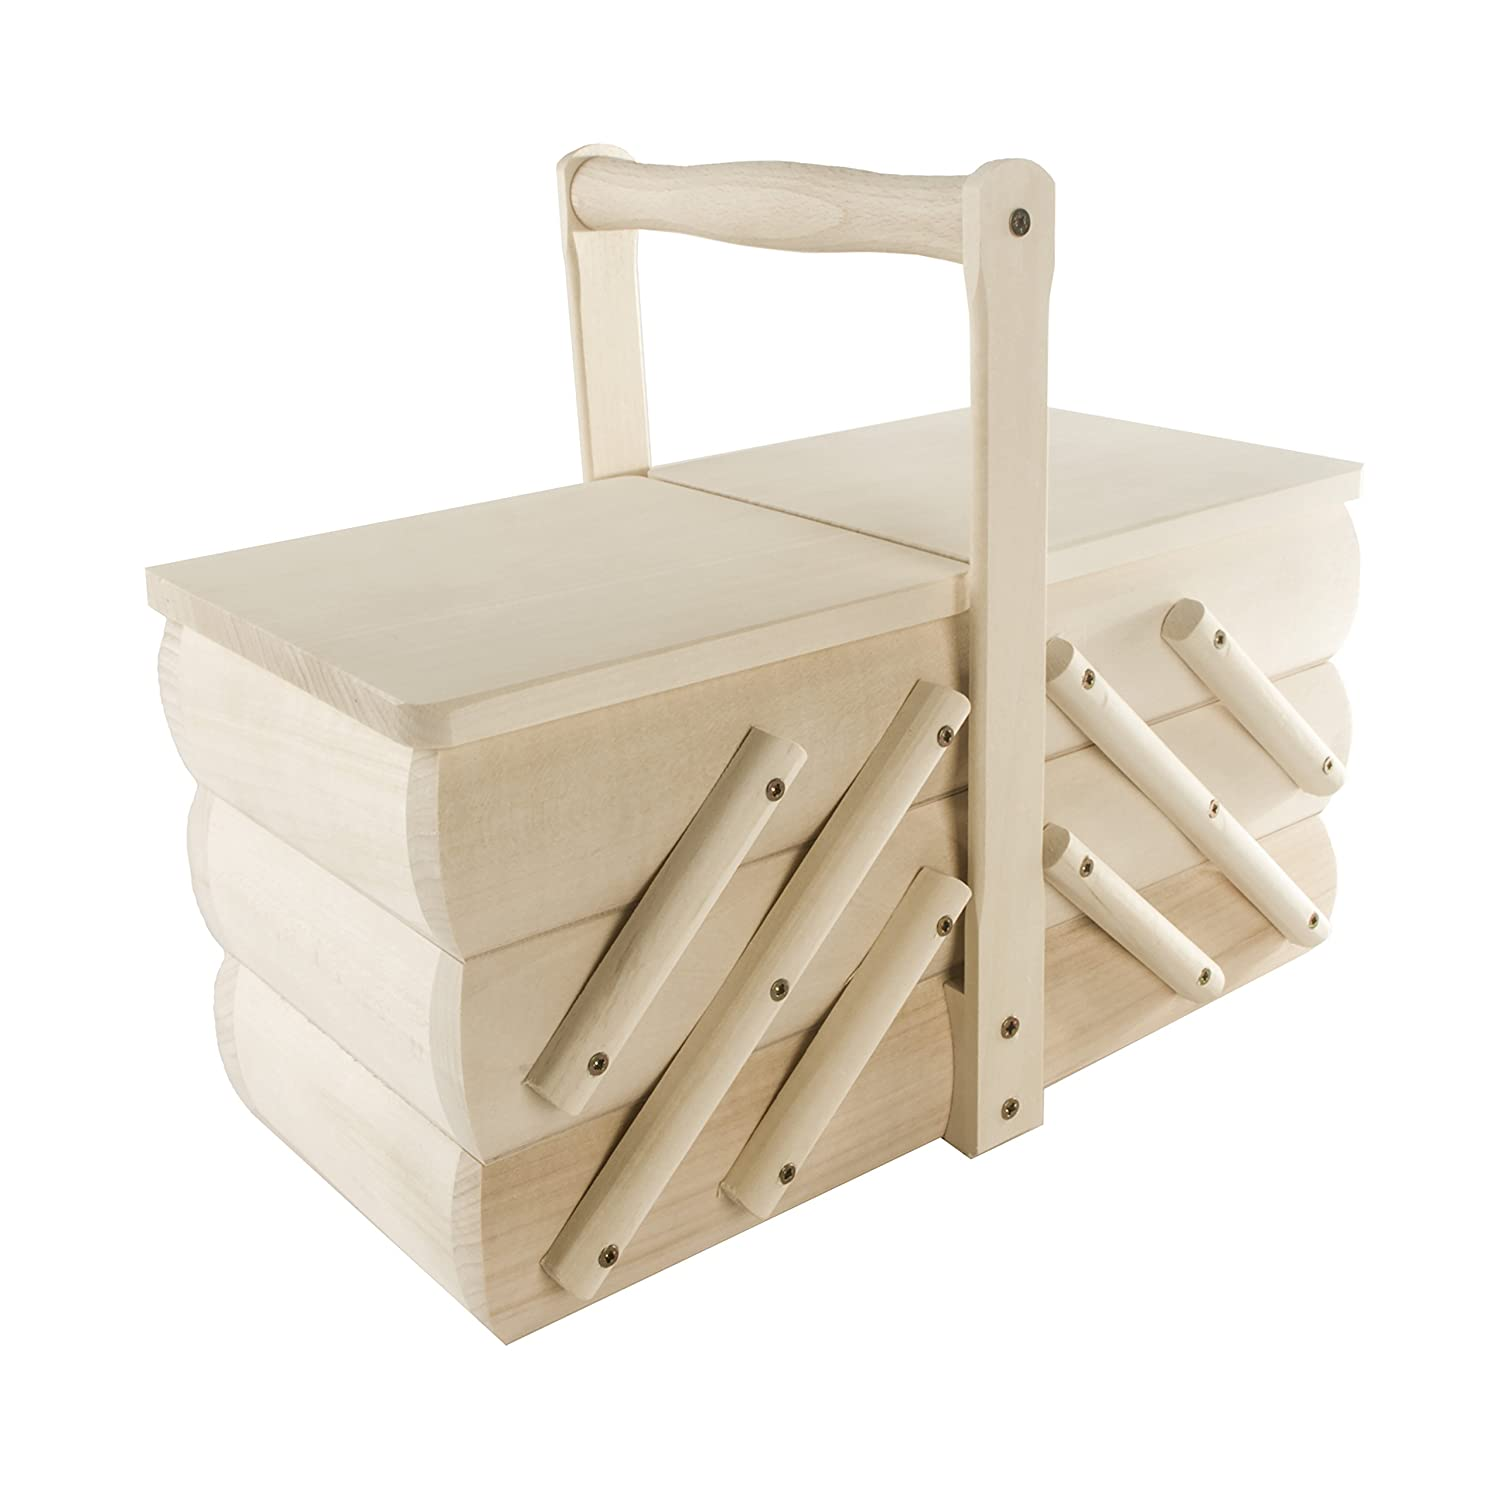 Wood Hobbygift 3-Tier Cantilever Sewing Box with Legs Light Shade Wooden//Beige